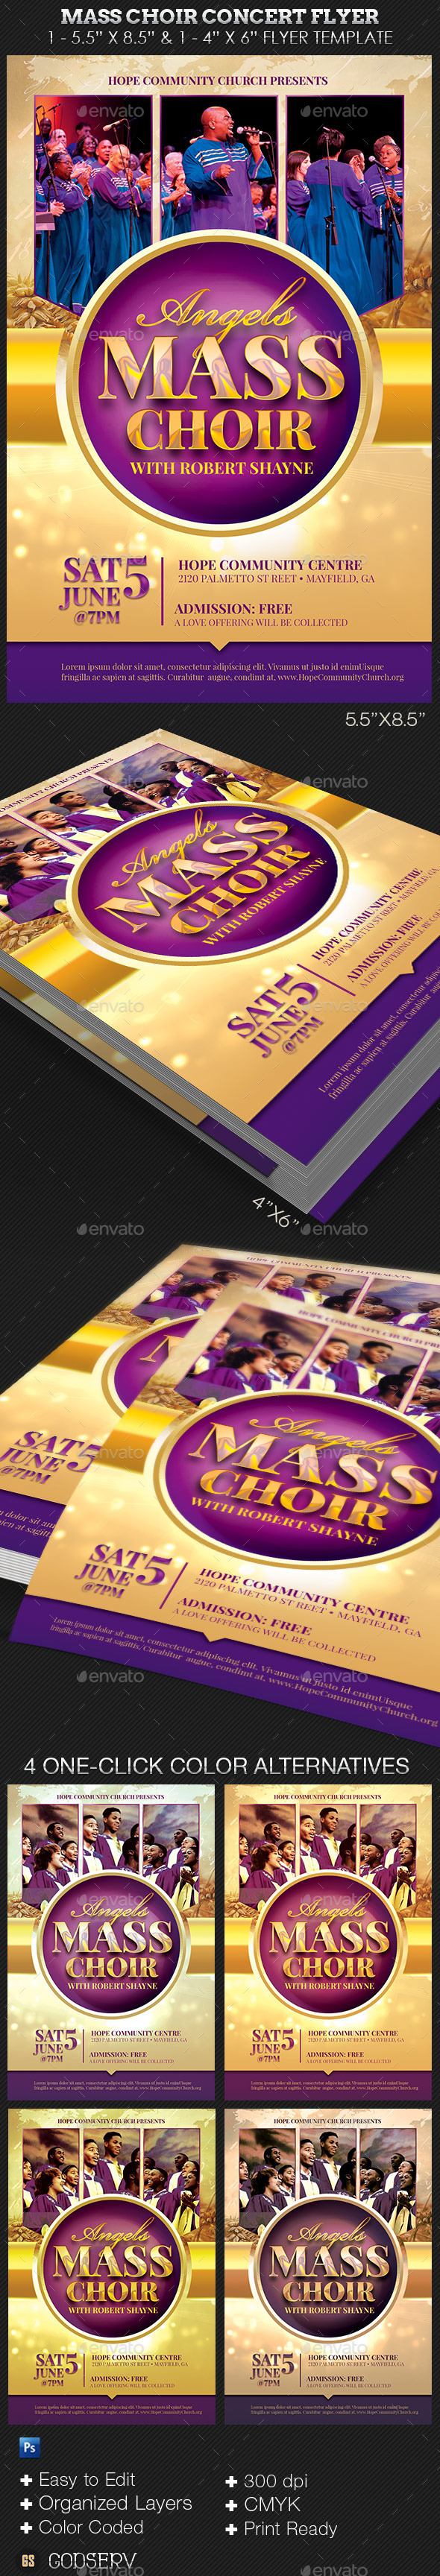 GraphicRiver Mass Choir Concert Flyer Template 11802857